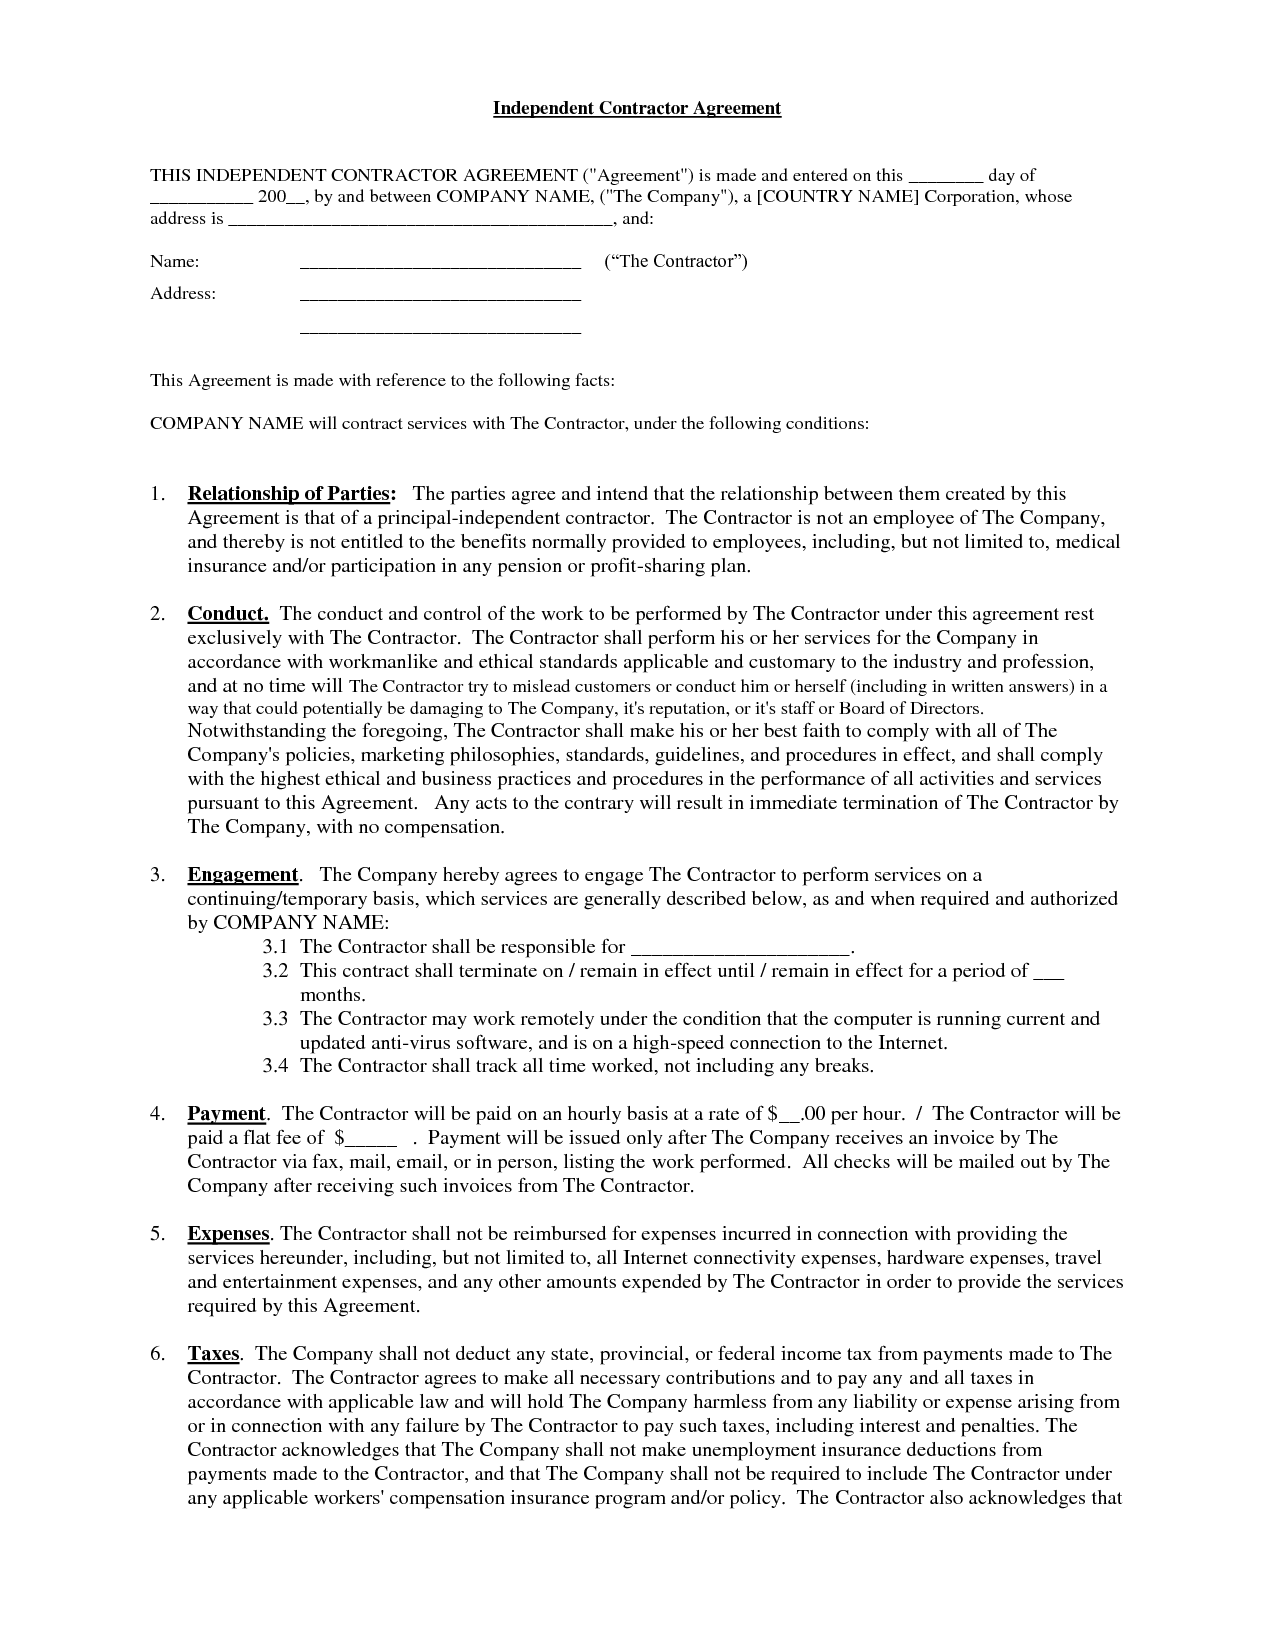 Subcontractor Resume Sample Independent Contractor Contract By Brittanygibbons